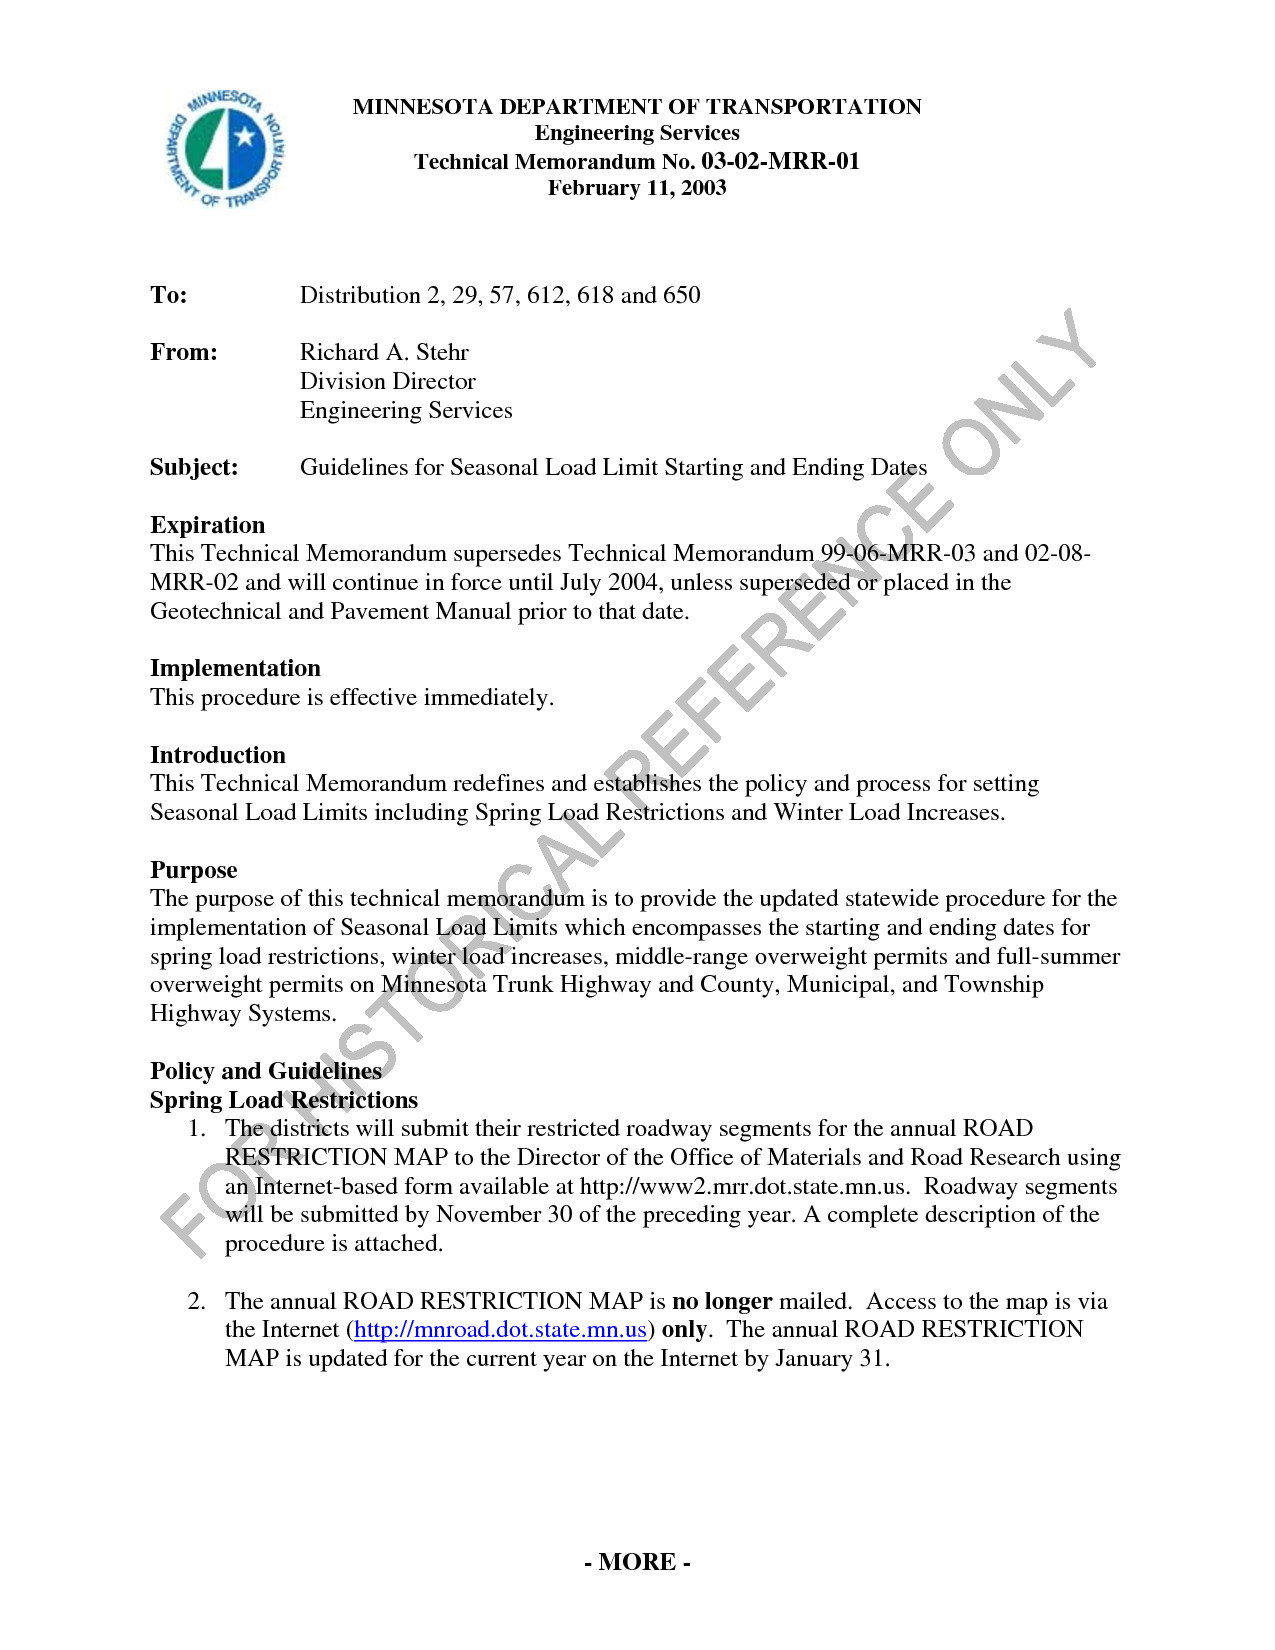 Technical Memo Template 12 Best Images Of Engineering Memo format Engineering